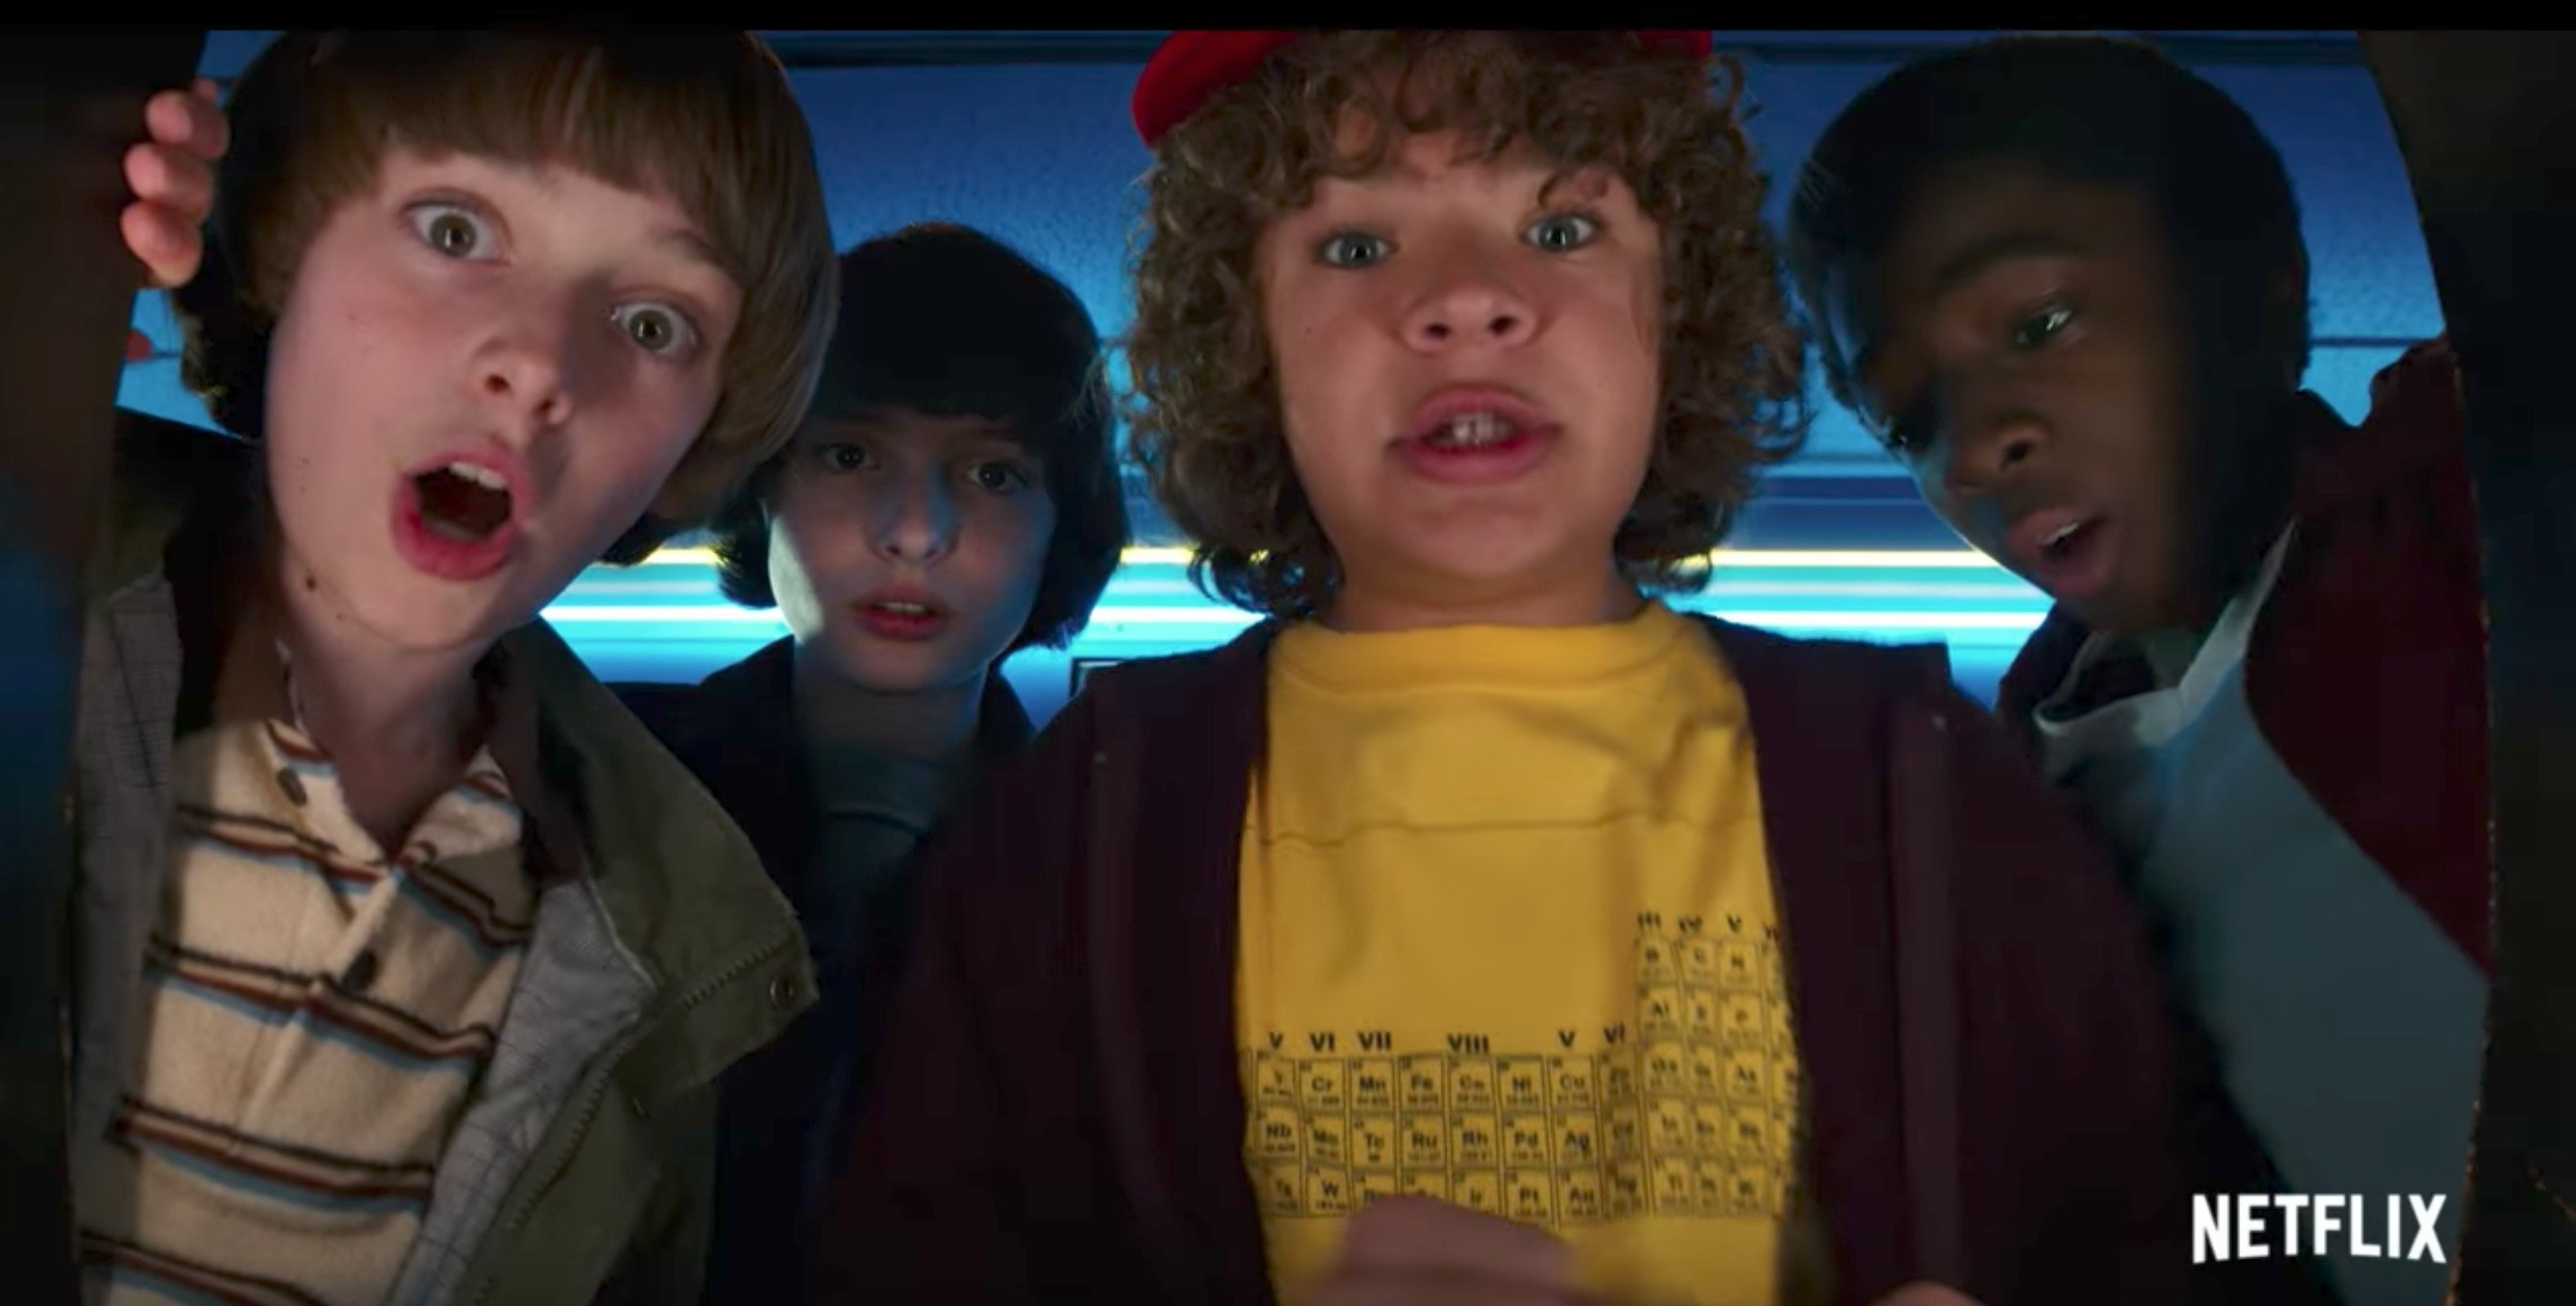 Stranger Things season 4 is on its way: Be patient